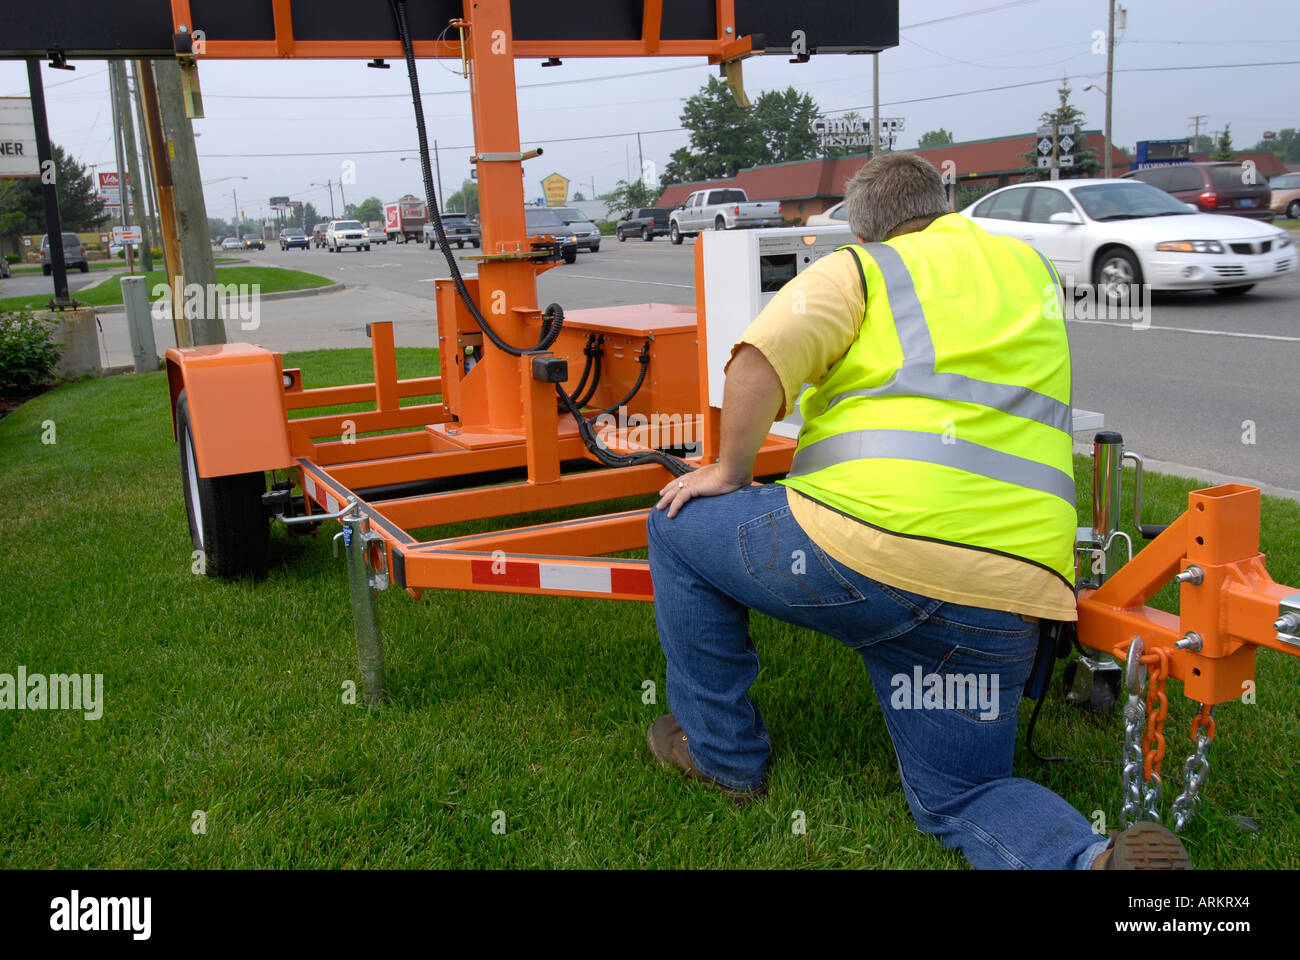 County road commission worker programs a sign for oncoming traffic - Stock Image